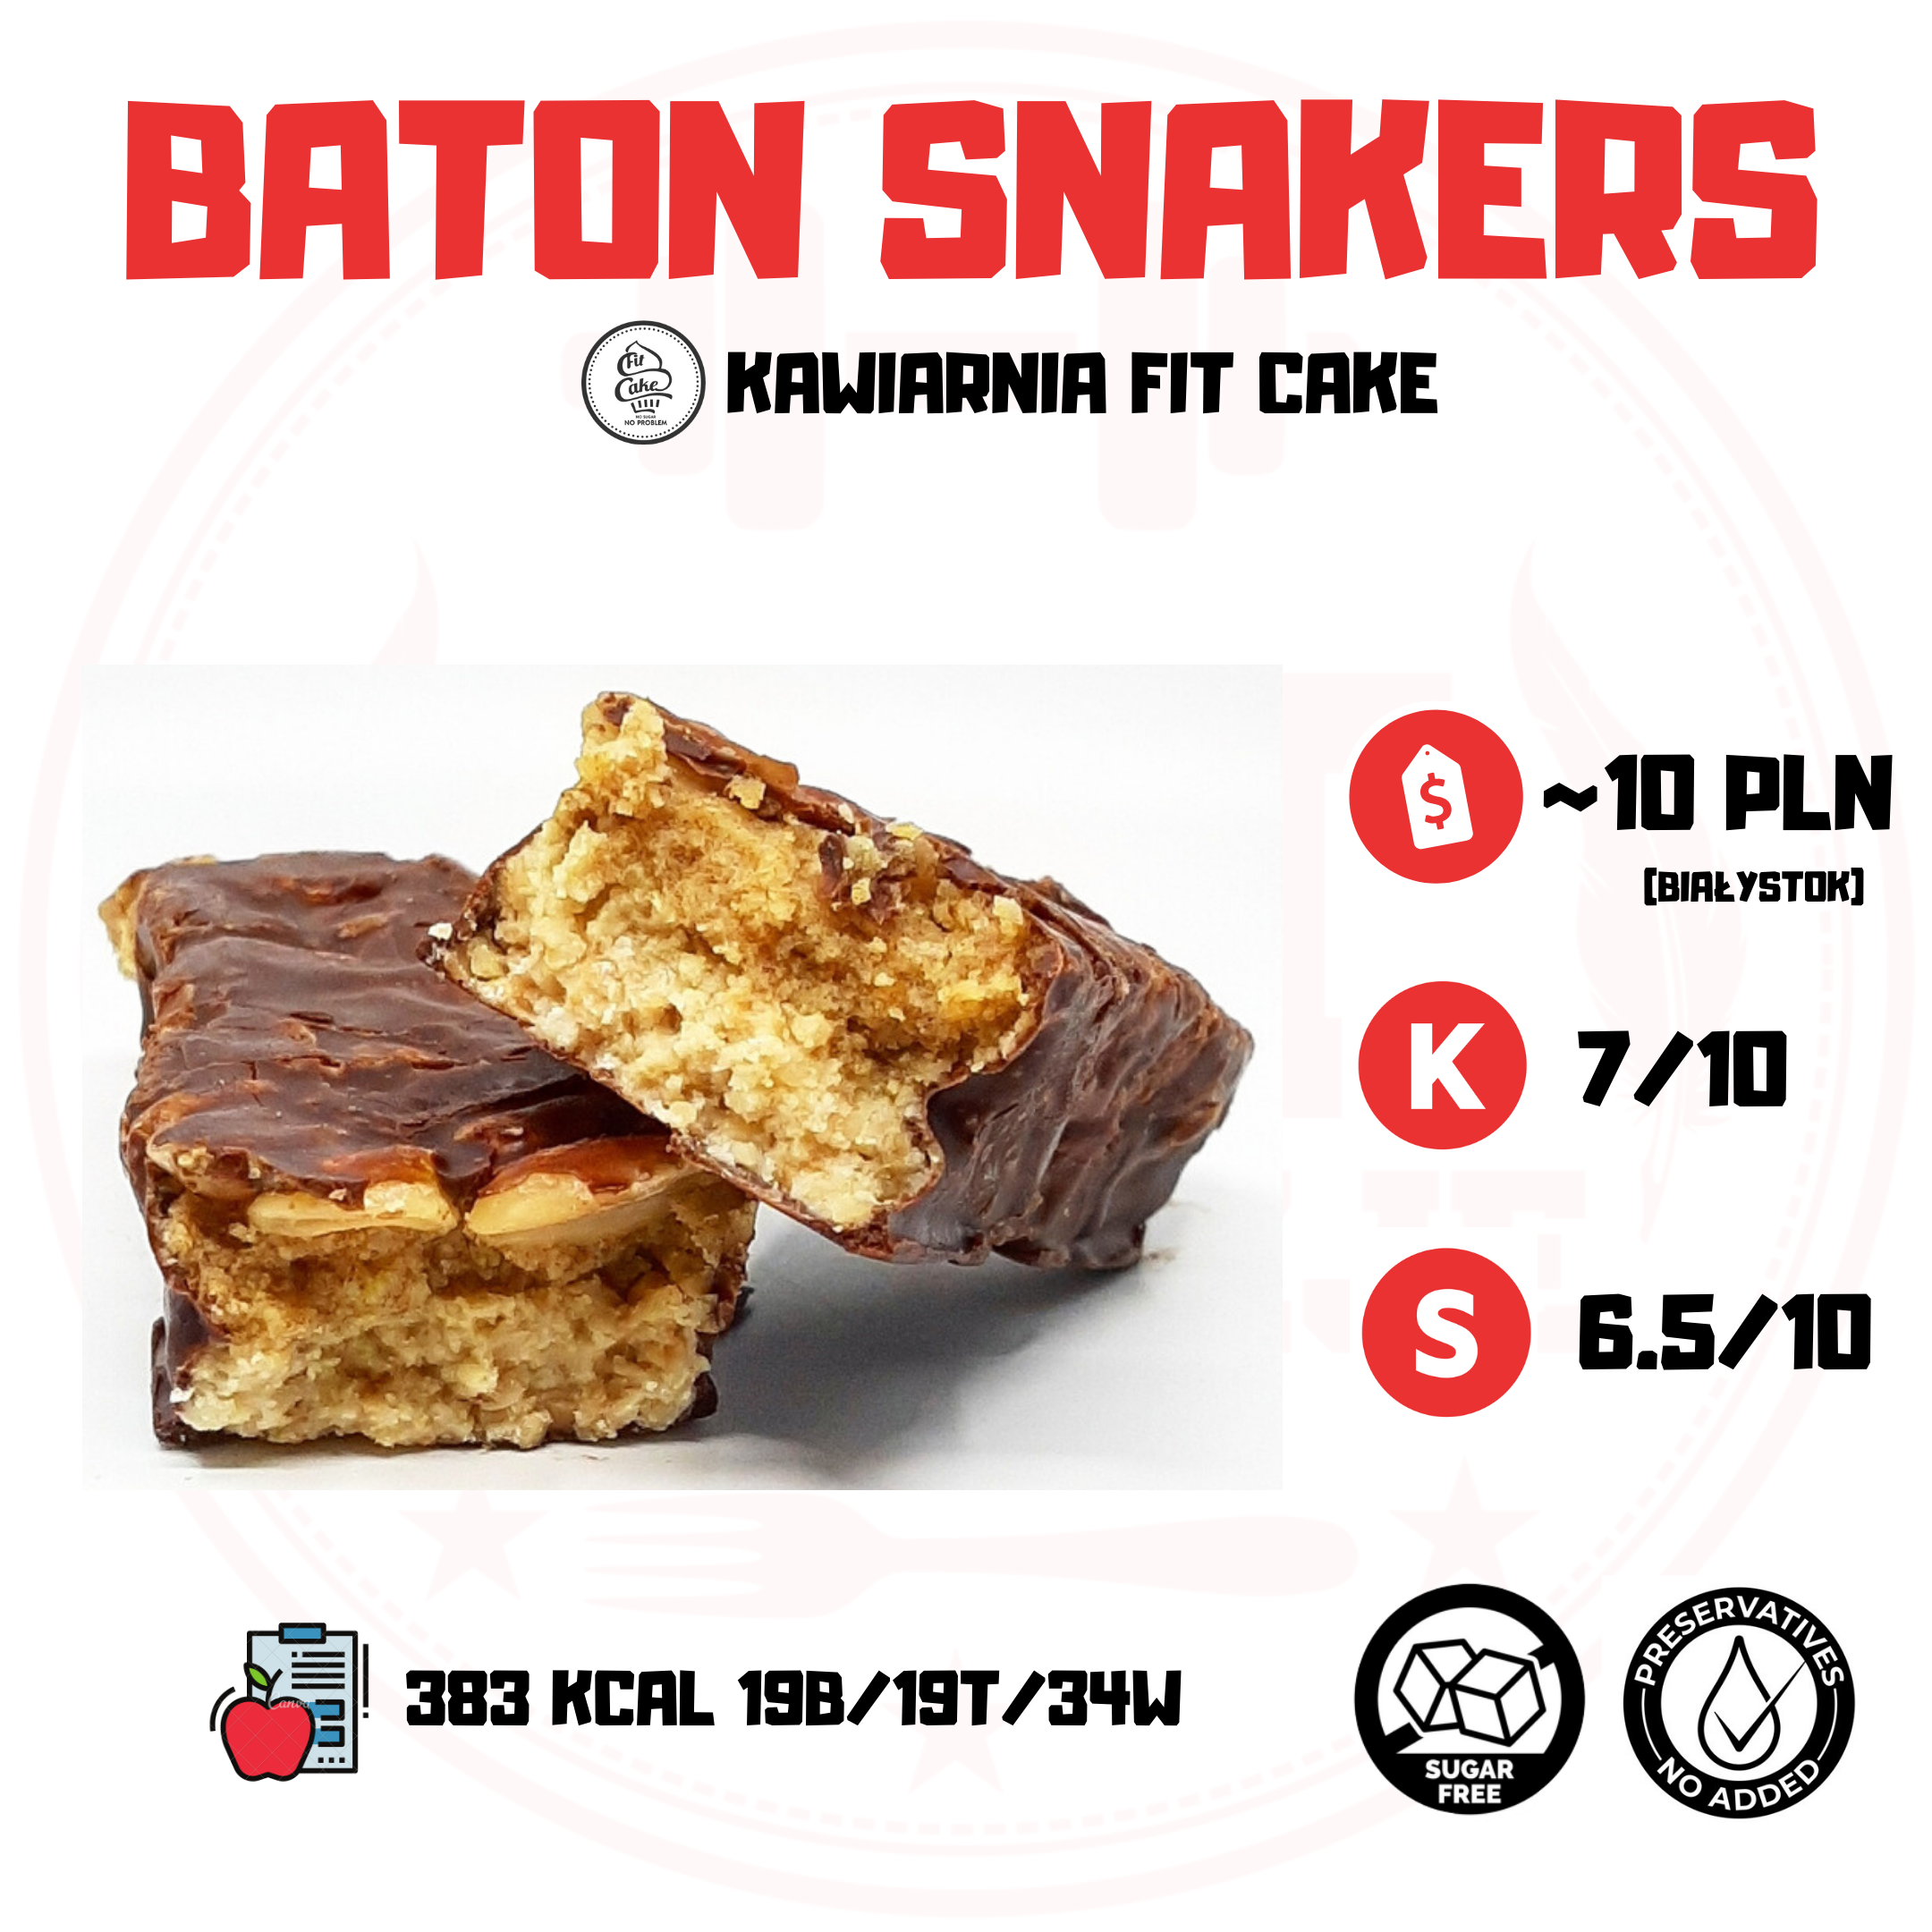 FIT CAKE BATON SNAKERS